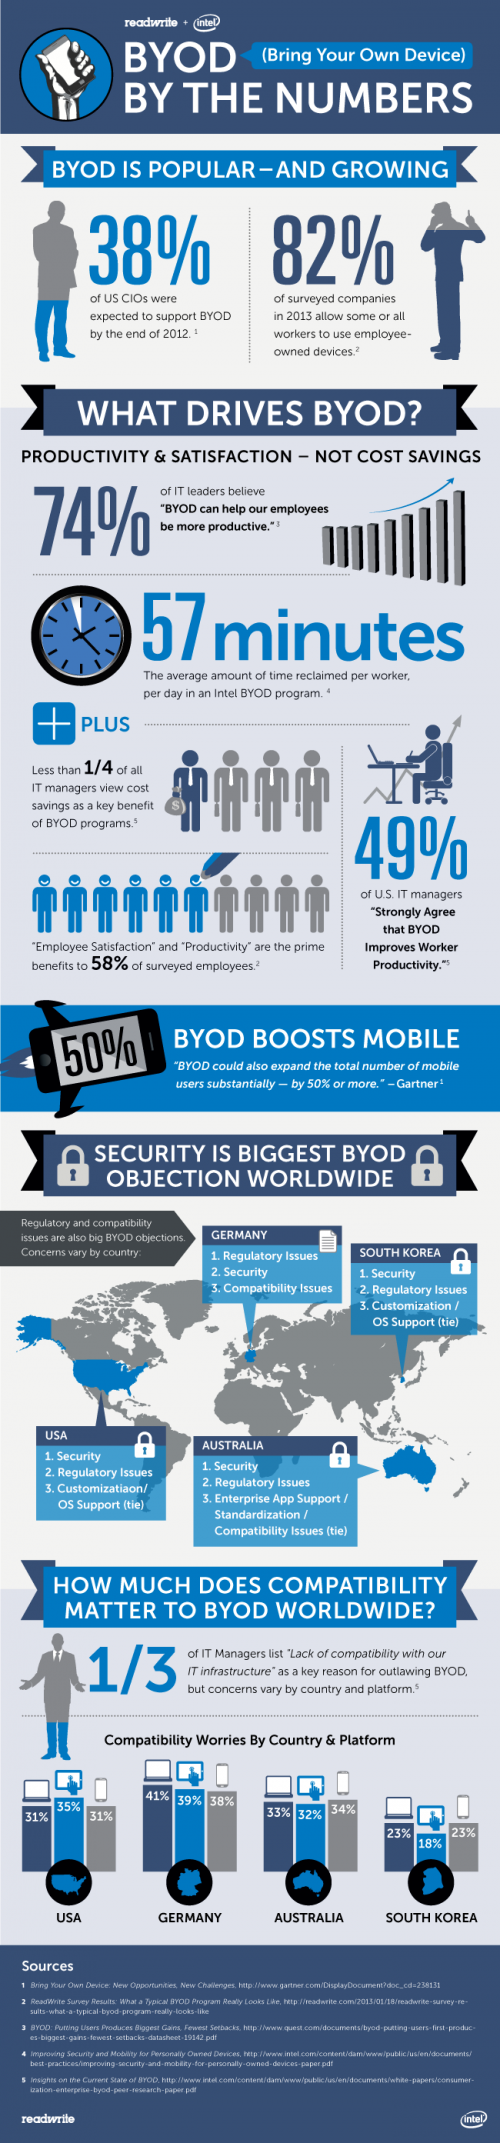 Infographic: BYOD By the Numbers - By Igor Beuker for ViralBlog.com